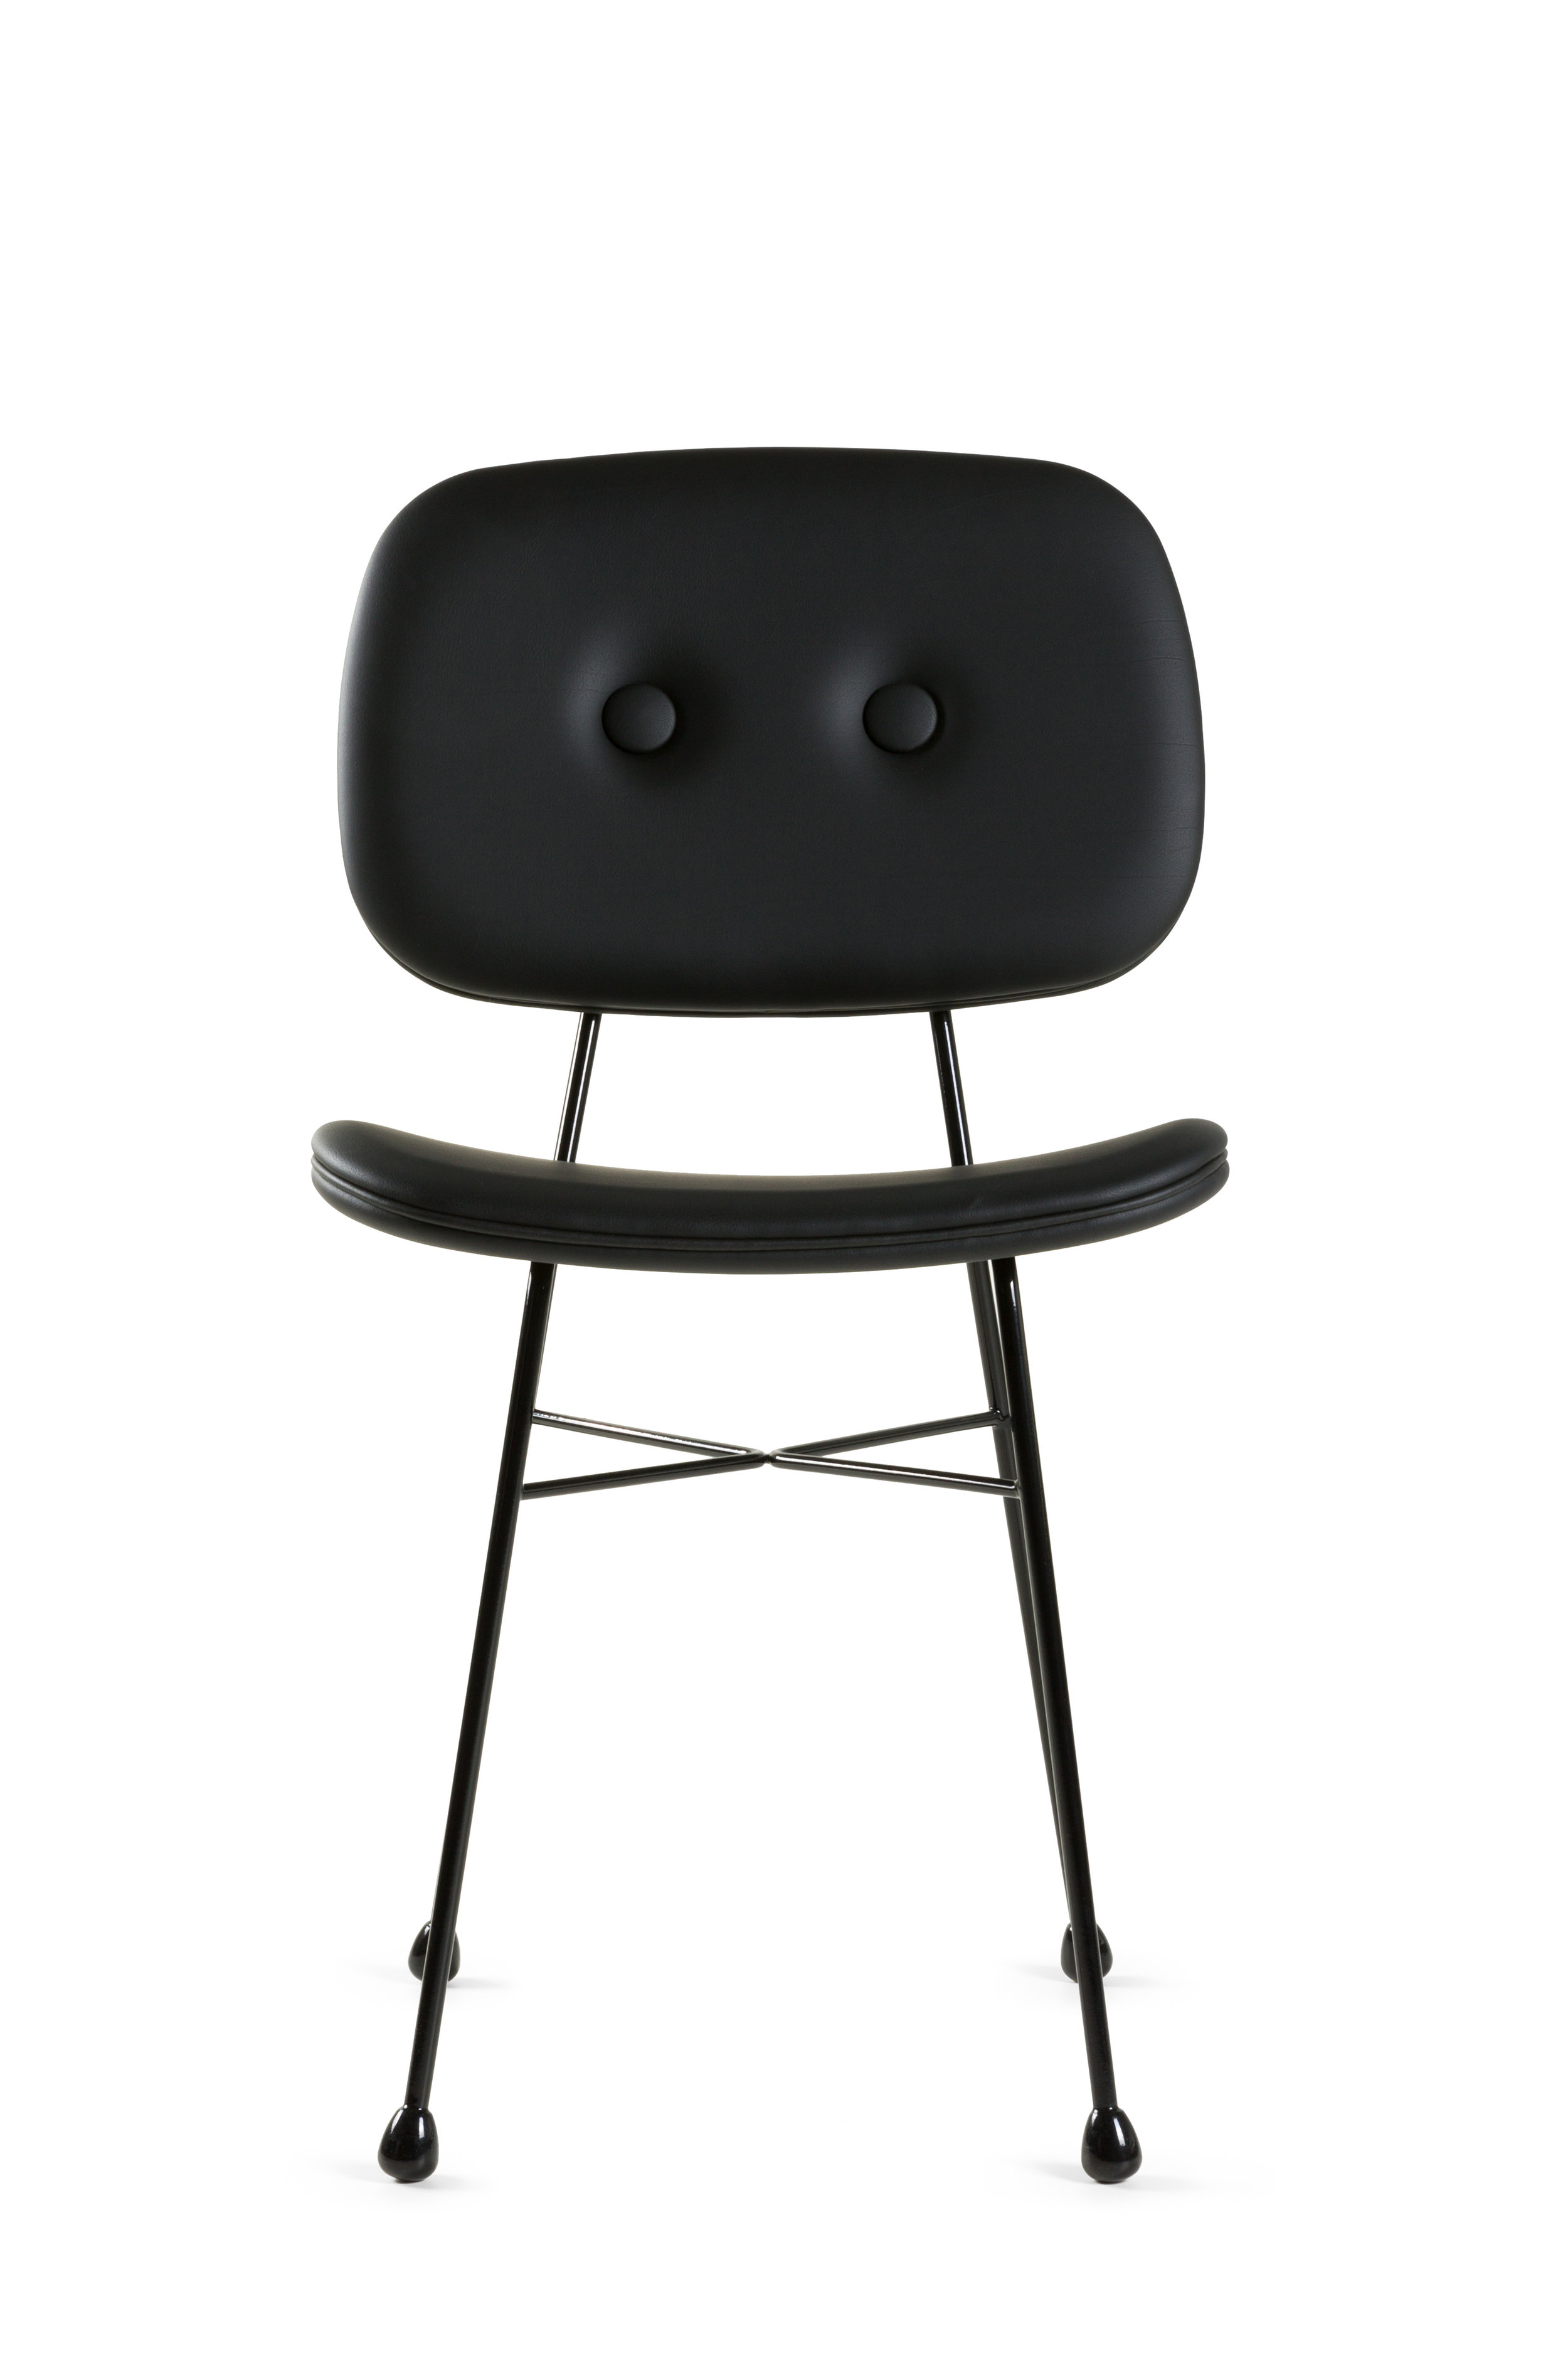 the_golden_chair_black_front_300dpi_moooi.jpg